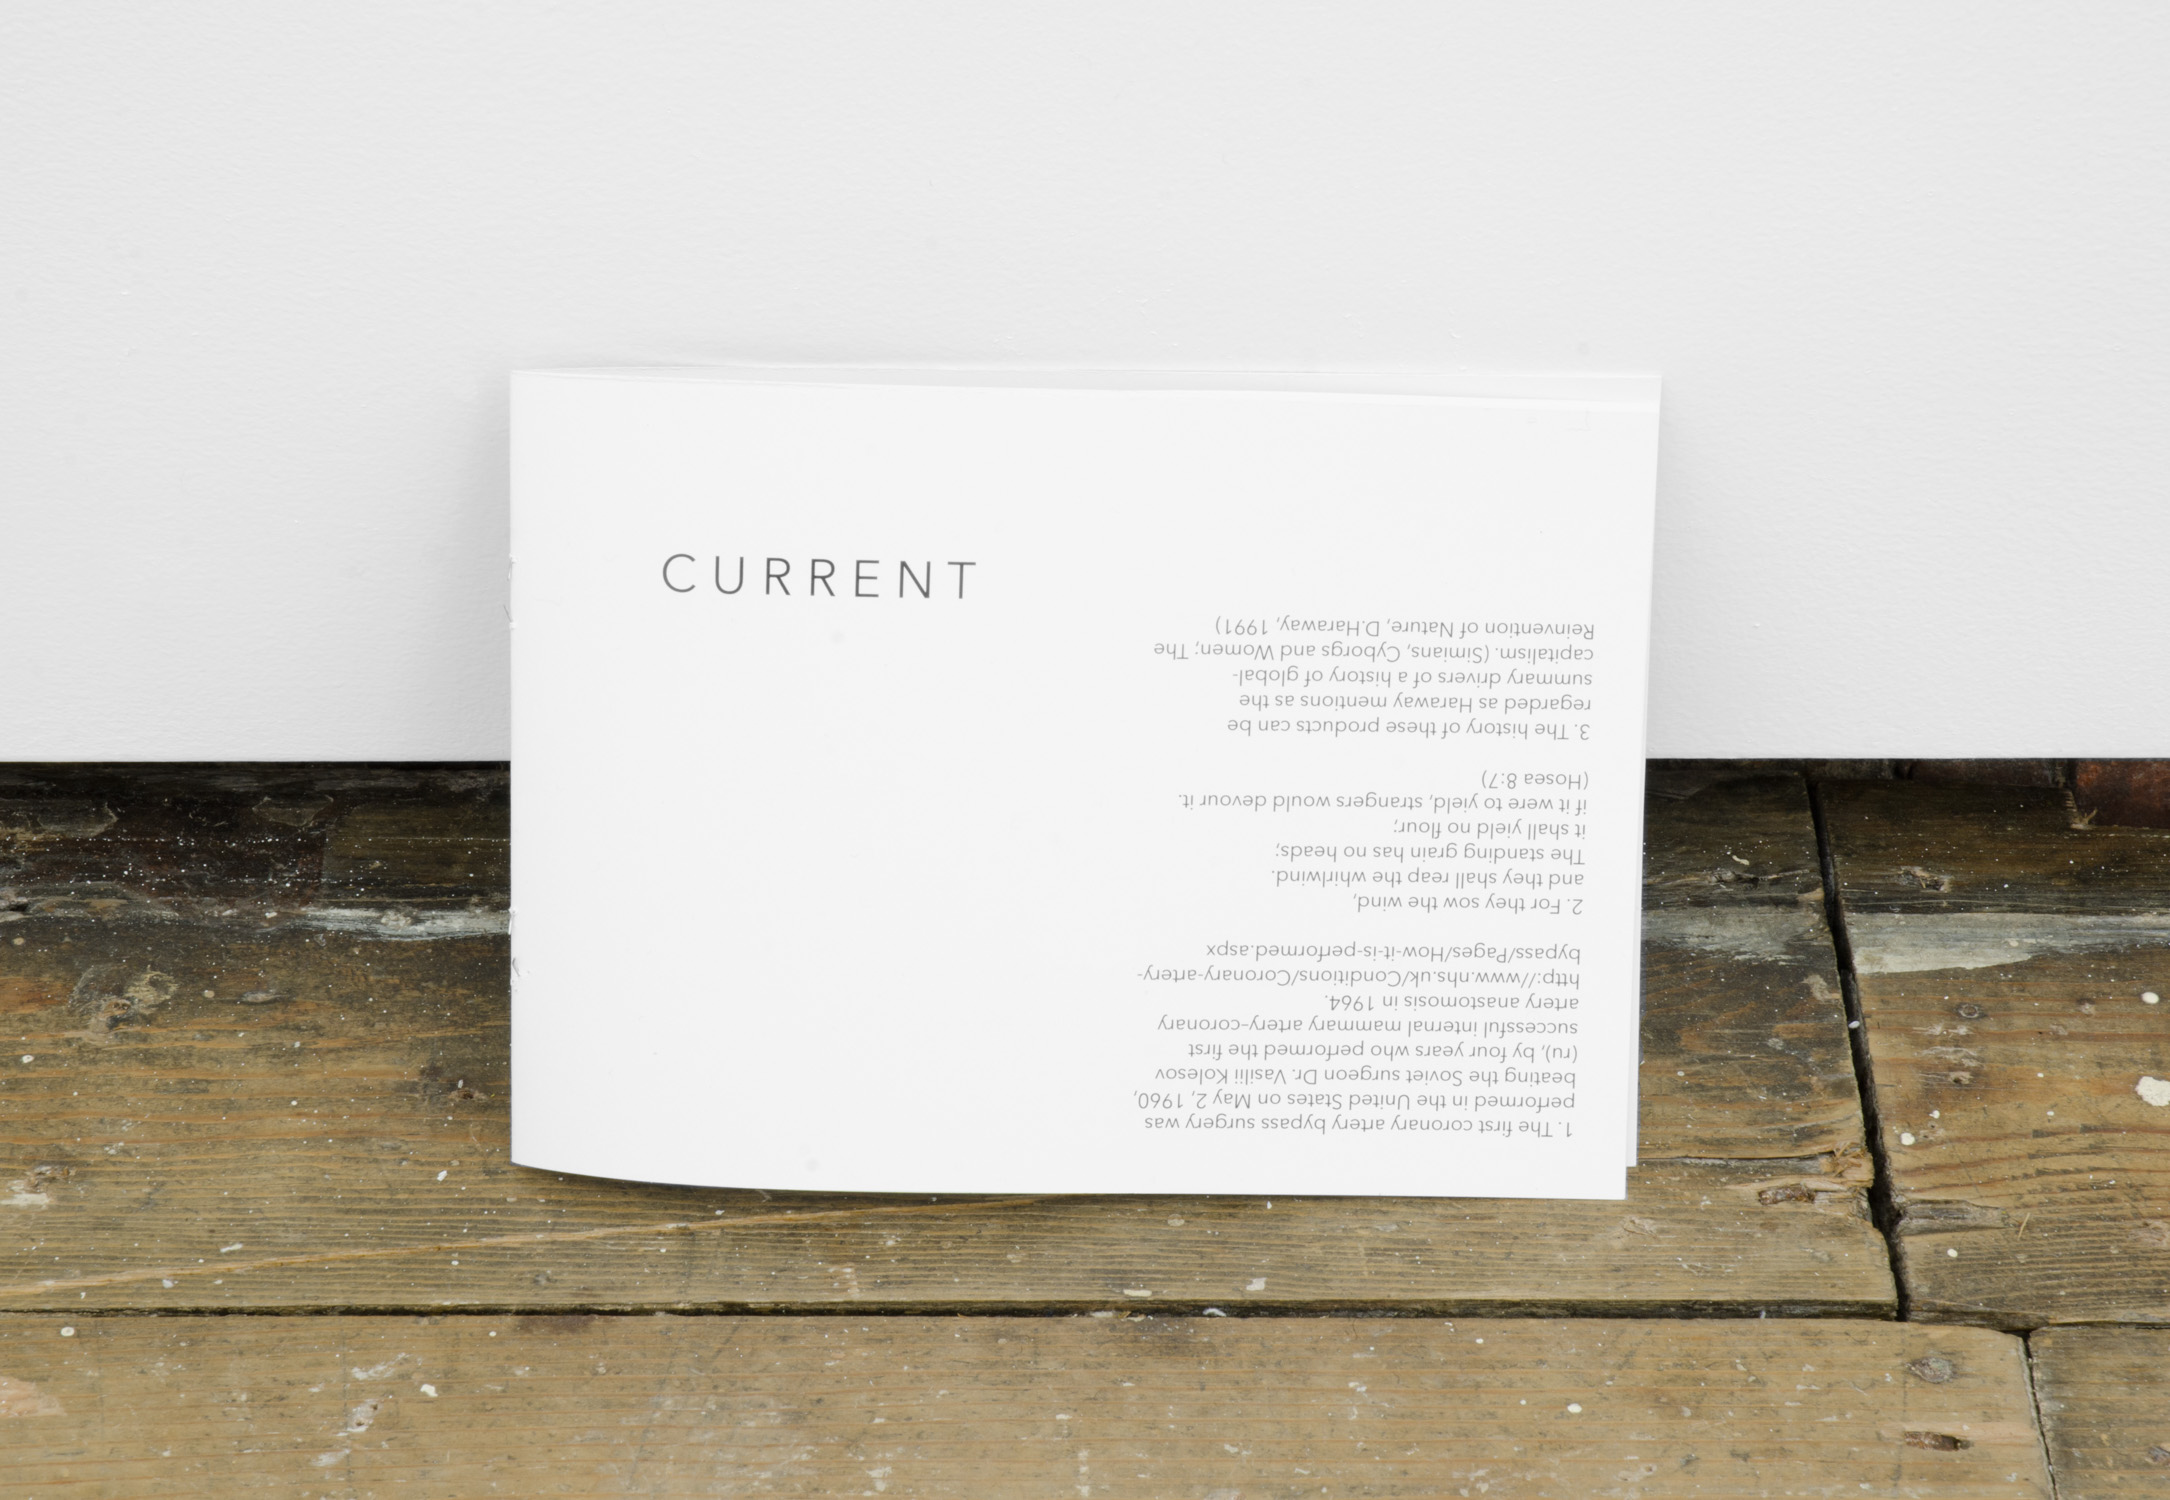 CURRENT , 2014, 'pamphlet' containing exhibition text.